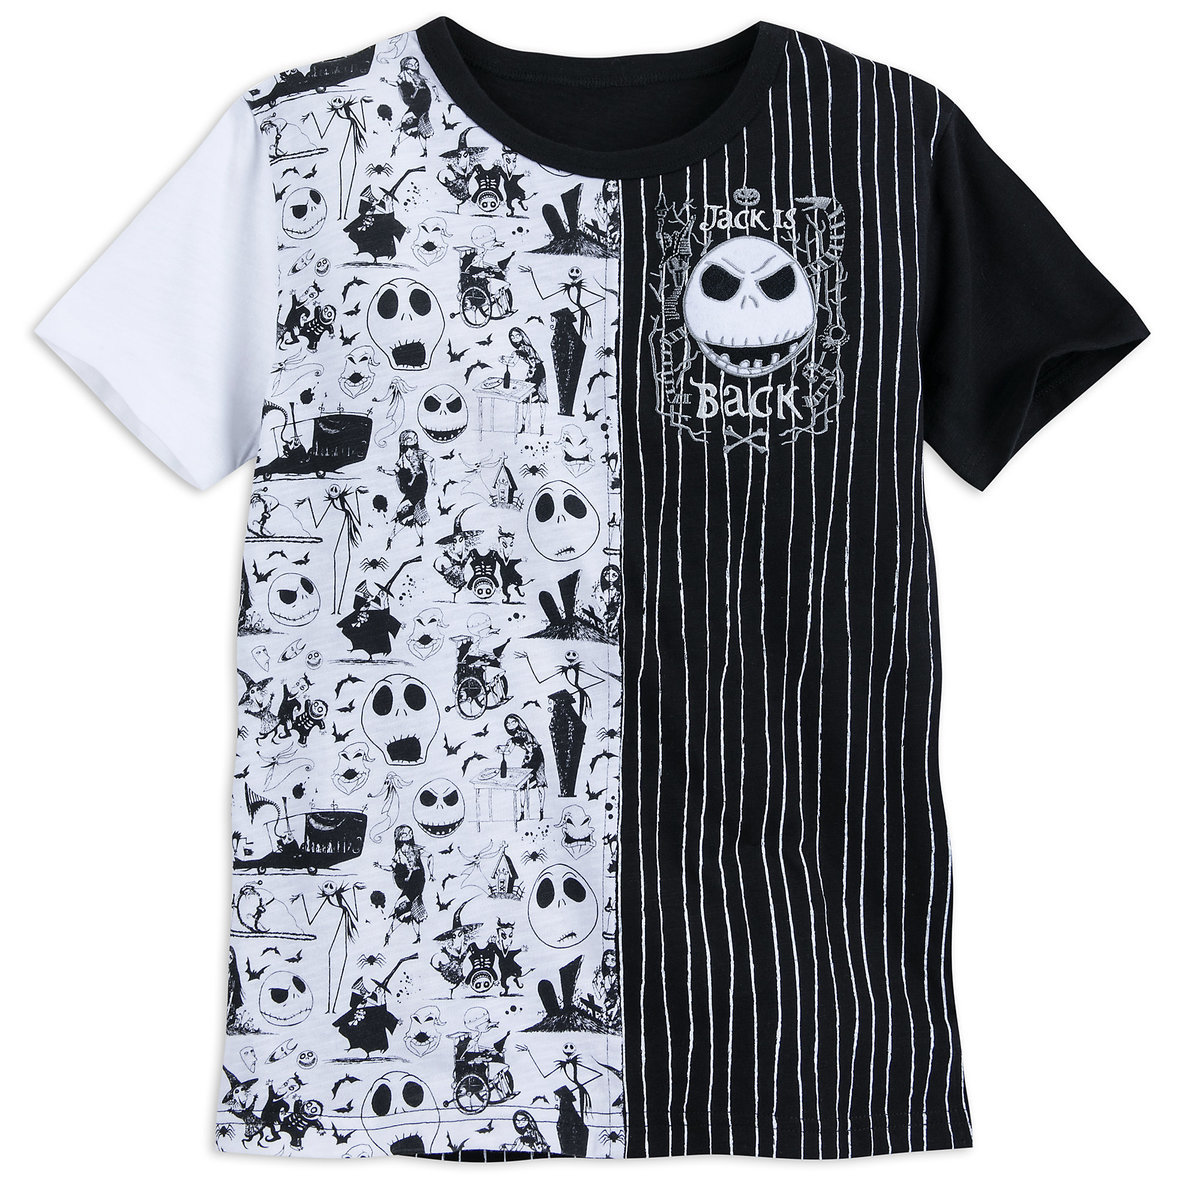 Jack Skellington Fashion T-Shirt for Boys - Nightmare Before ...